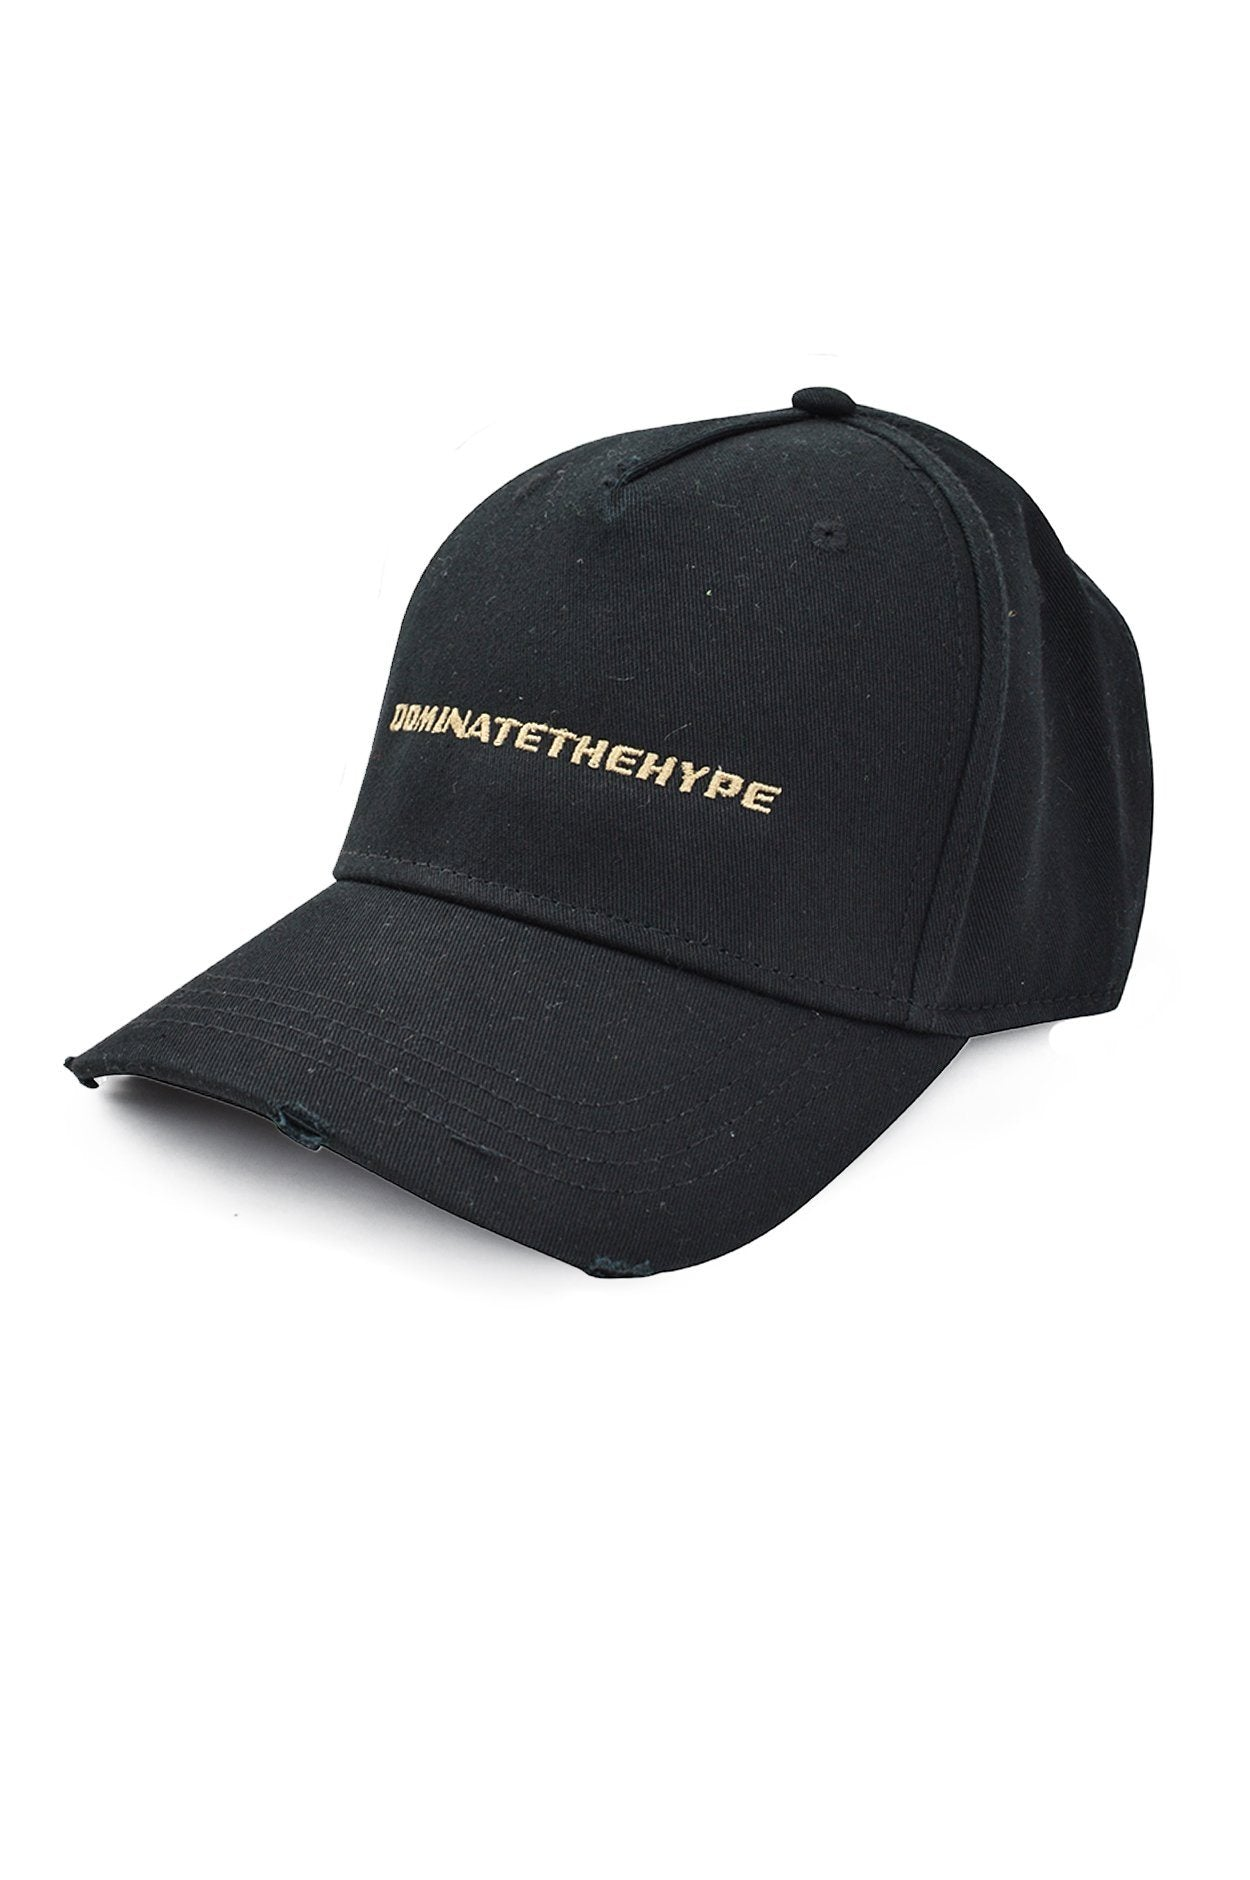 Dominate The Hype Destroyed Cap Black - PEGADOR - Dominate the Hype